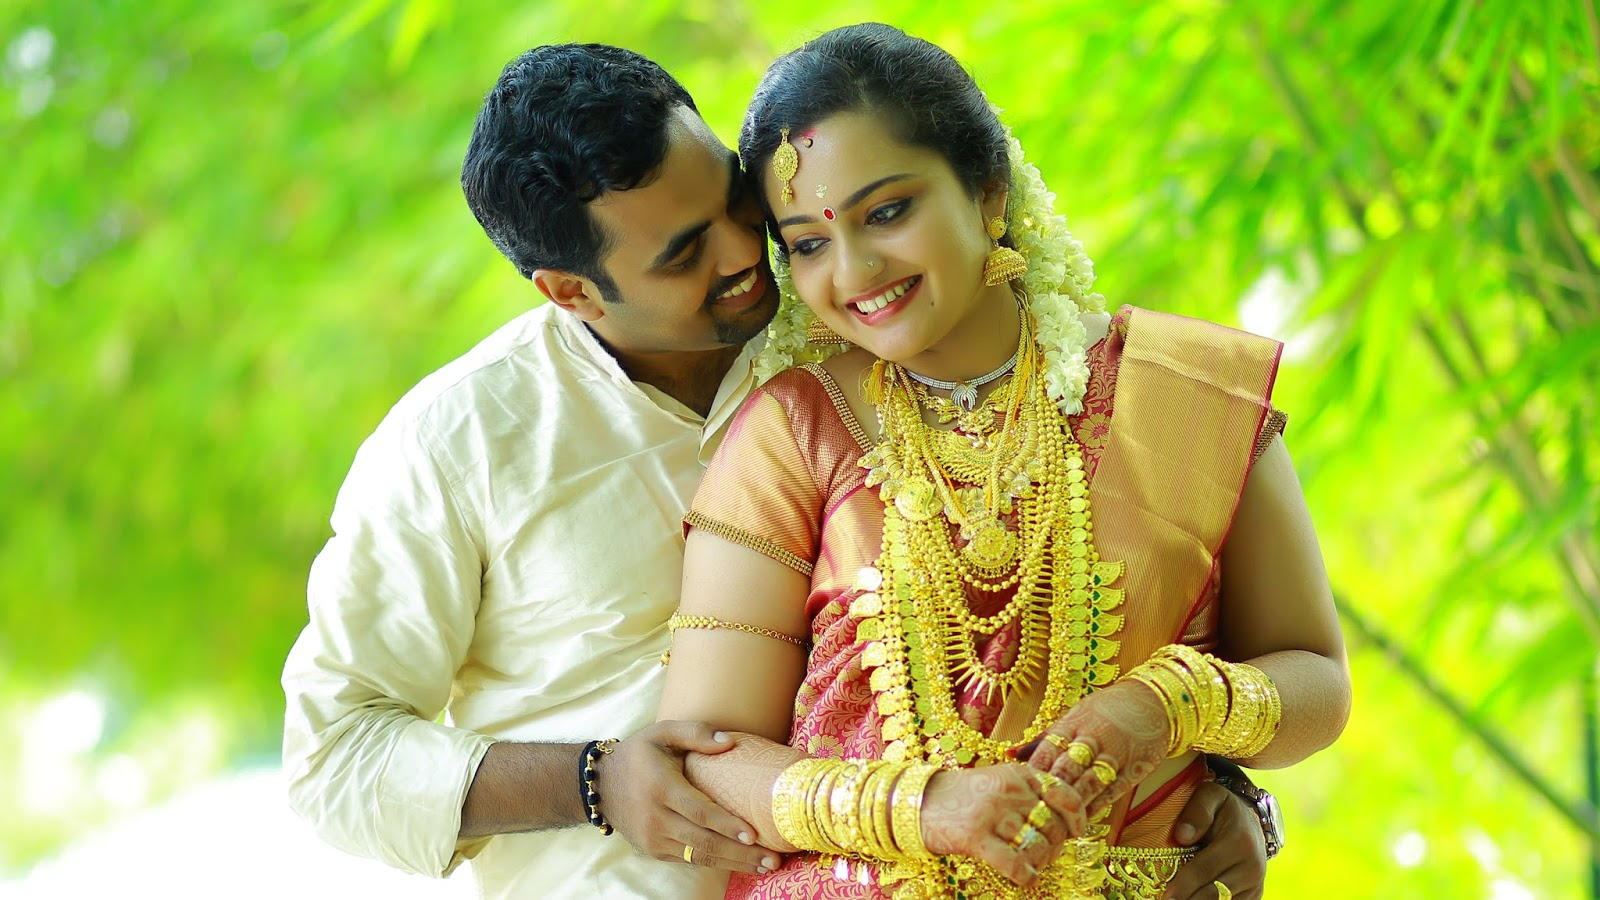 Wedding Gifts For Kerala Bride : ... wedding vows traditional hindu wedding gifts traditional hindu wedding